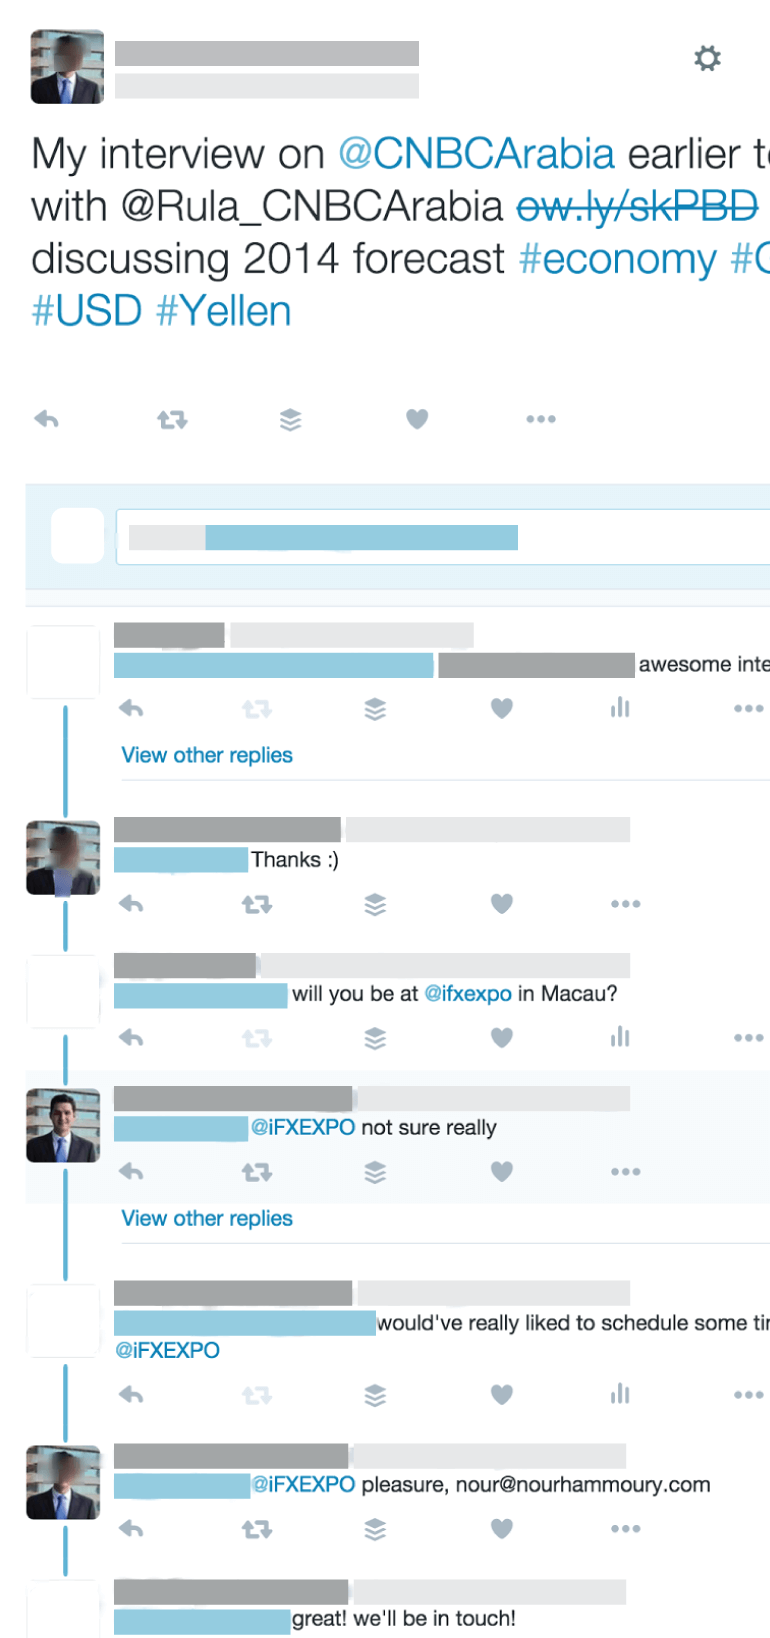 Example of a targeted conversation on social media